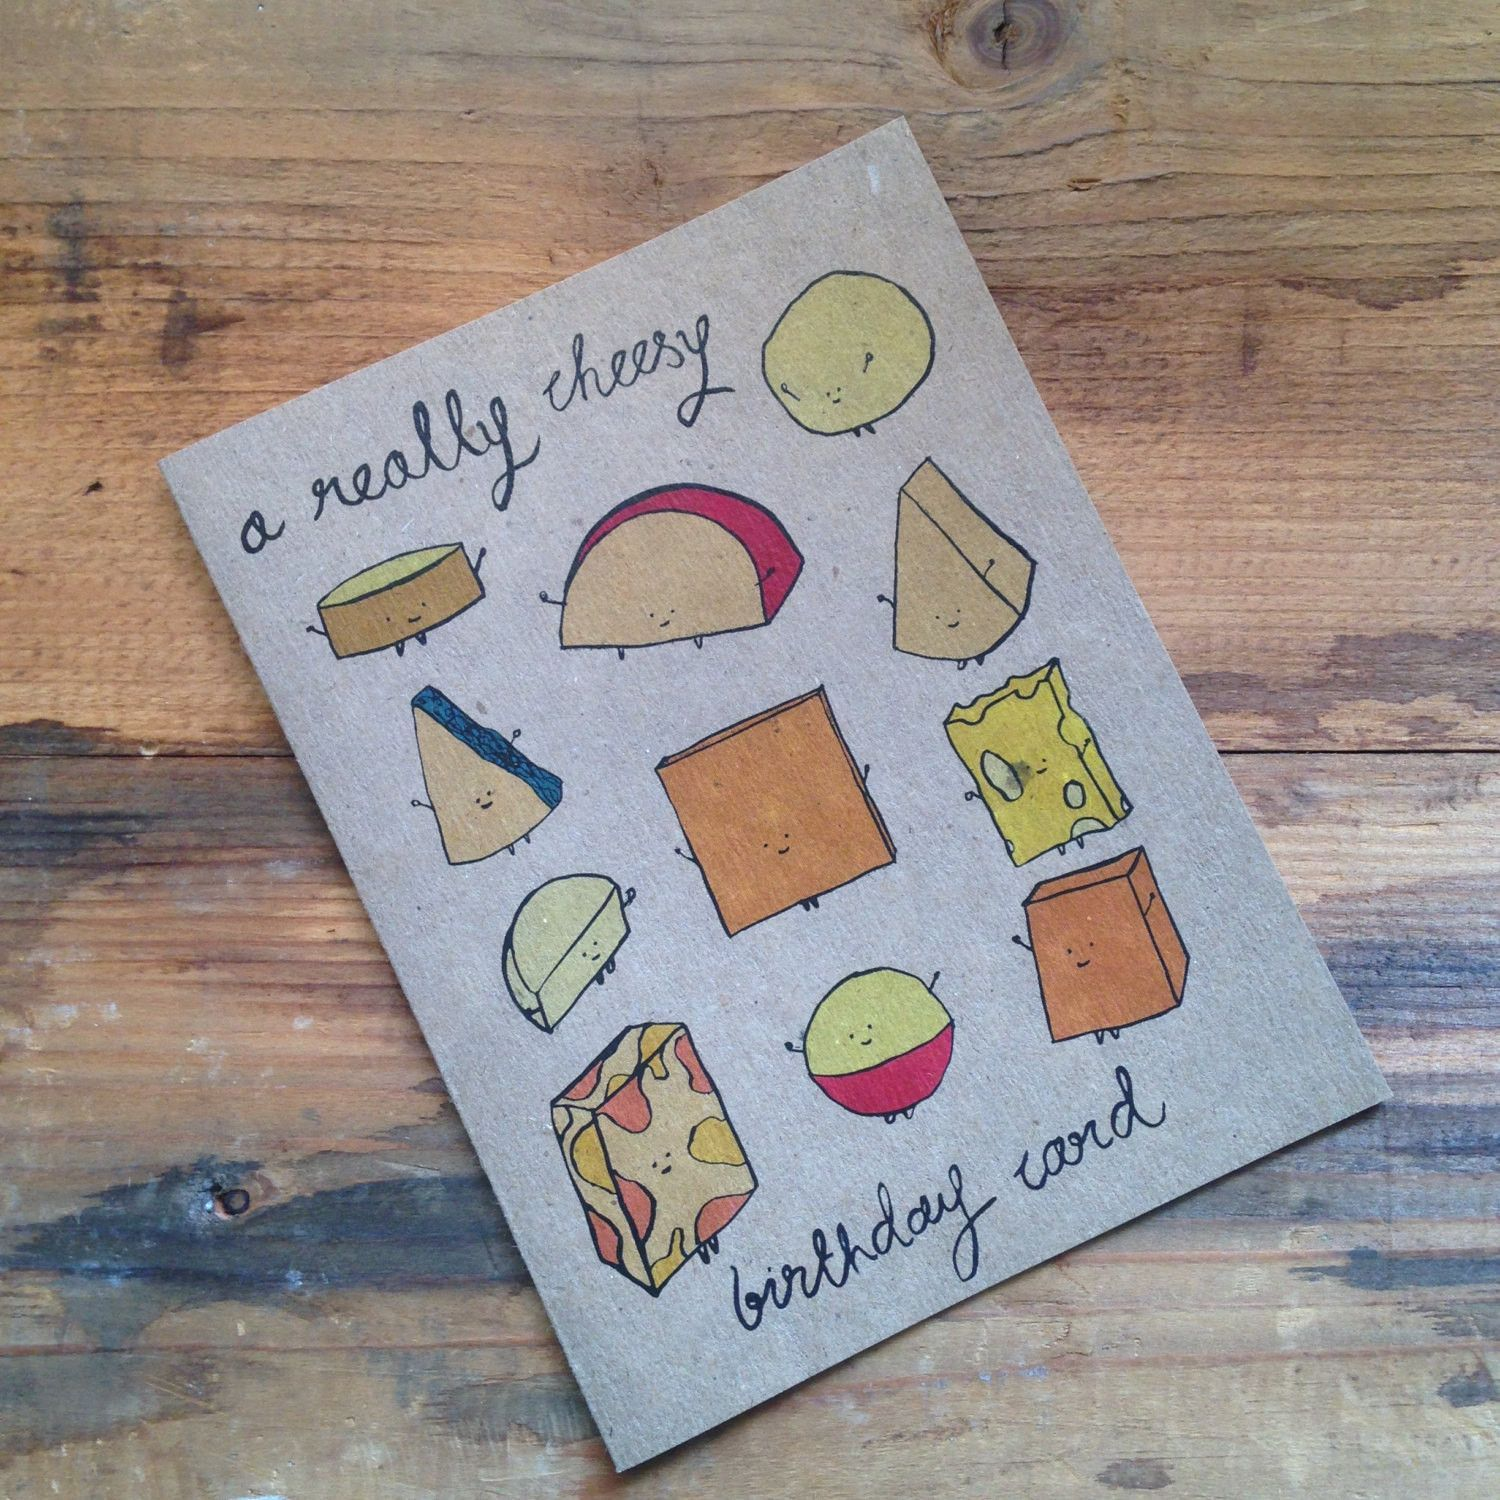 A Really Cheesy Birthday Card